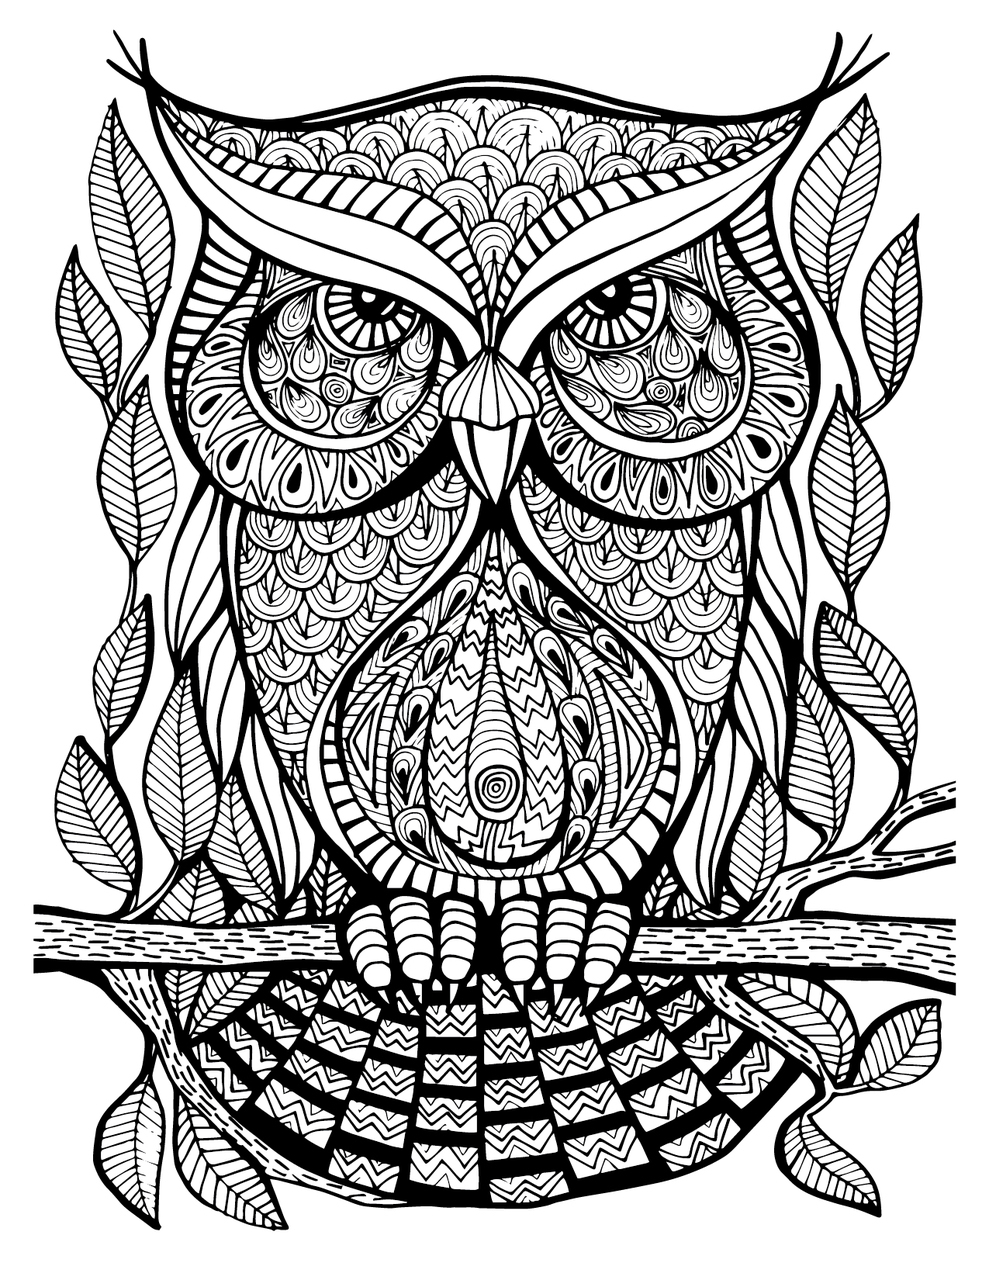 Adult coloring pages for stress relief - Ad Adult Stress Relief Coloring Sheets Check Out This Great Adult Coloring Image Straight Out